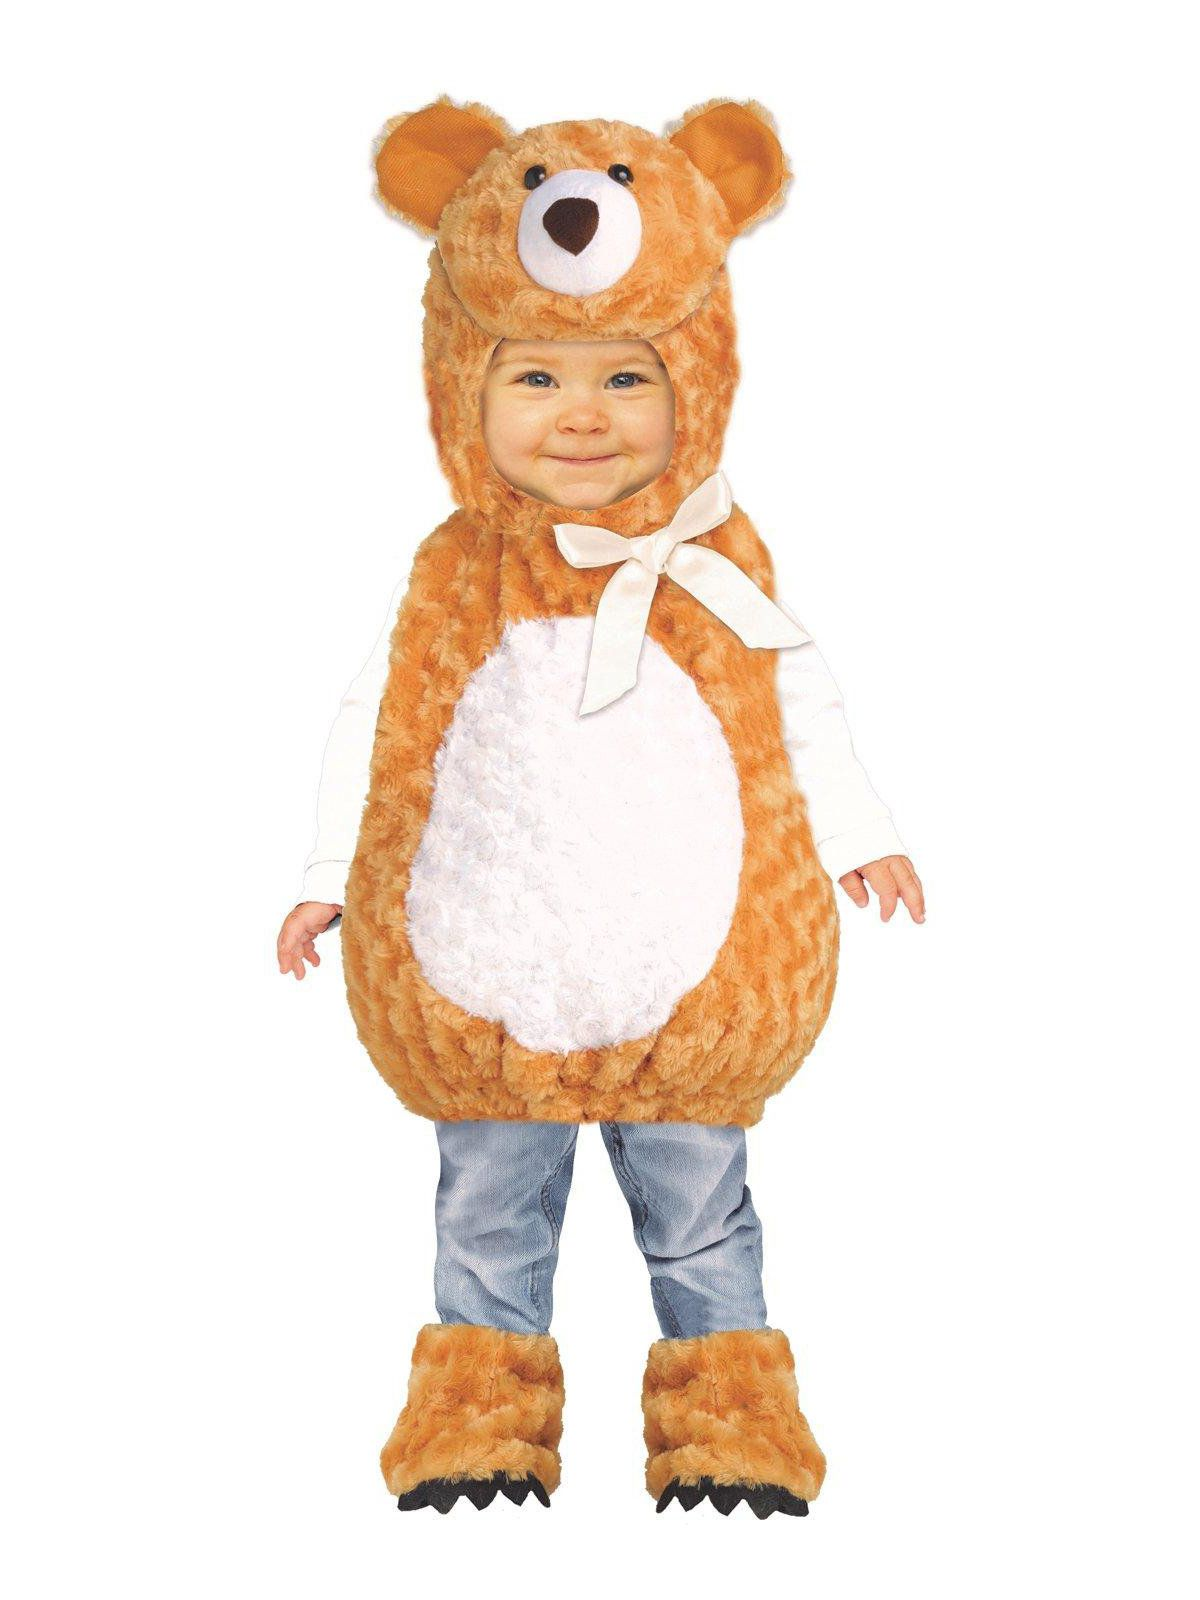 Baby Teddy Bear Costume For Babies  sc 1 st  Wholesale Halloween Costumes & Baby Teddy Bear Costume For Babies - Baby/Toddler Costumes for 2018 ...